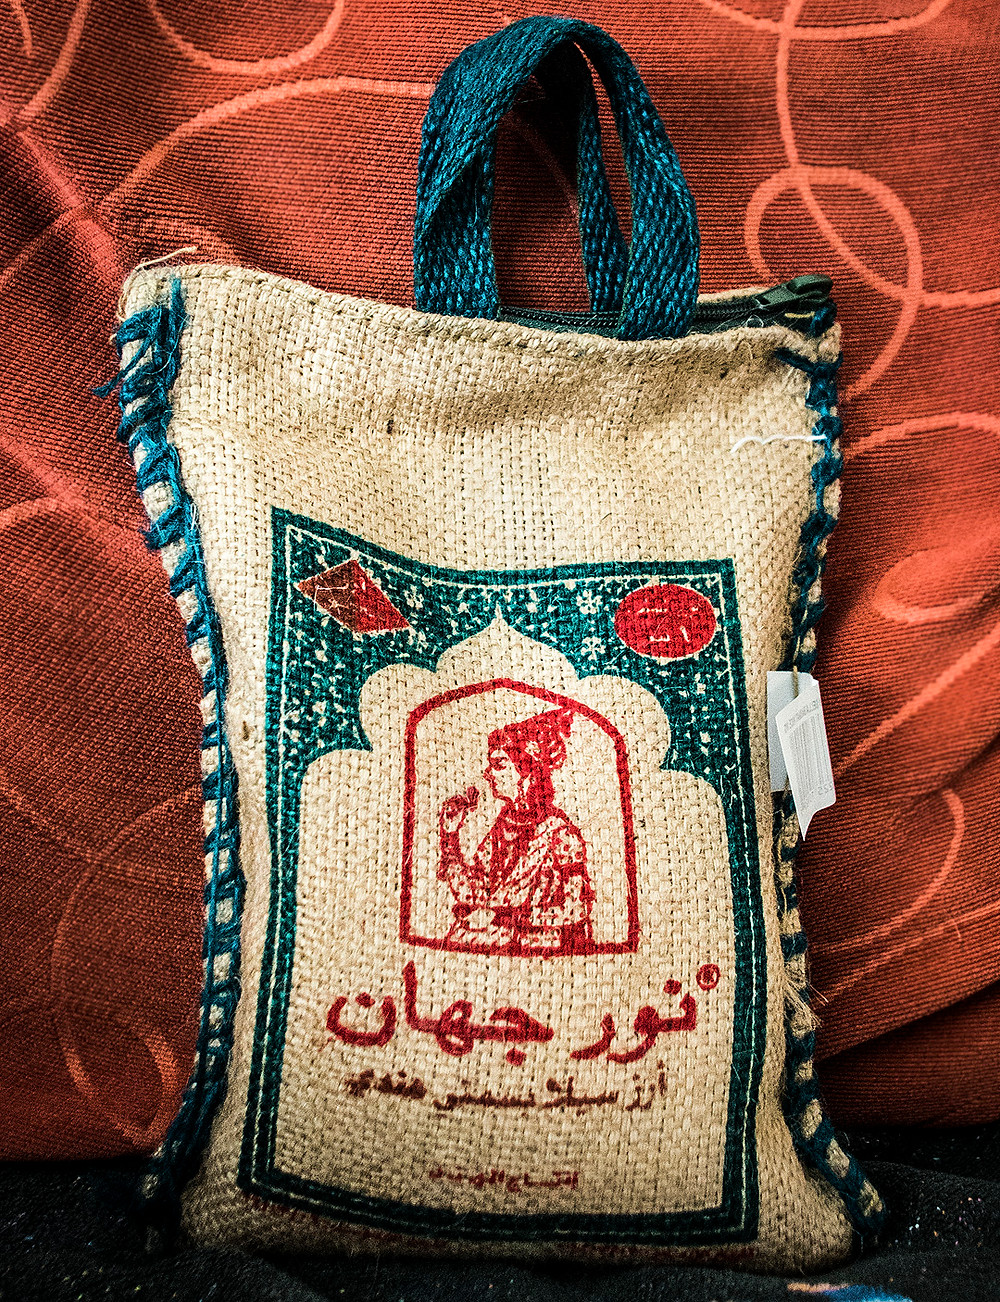 Bag of rice in Arabic